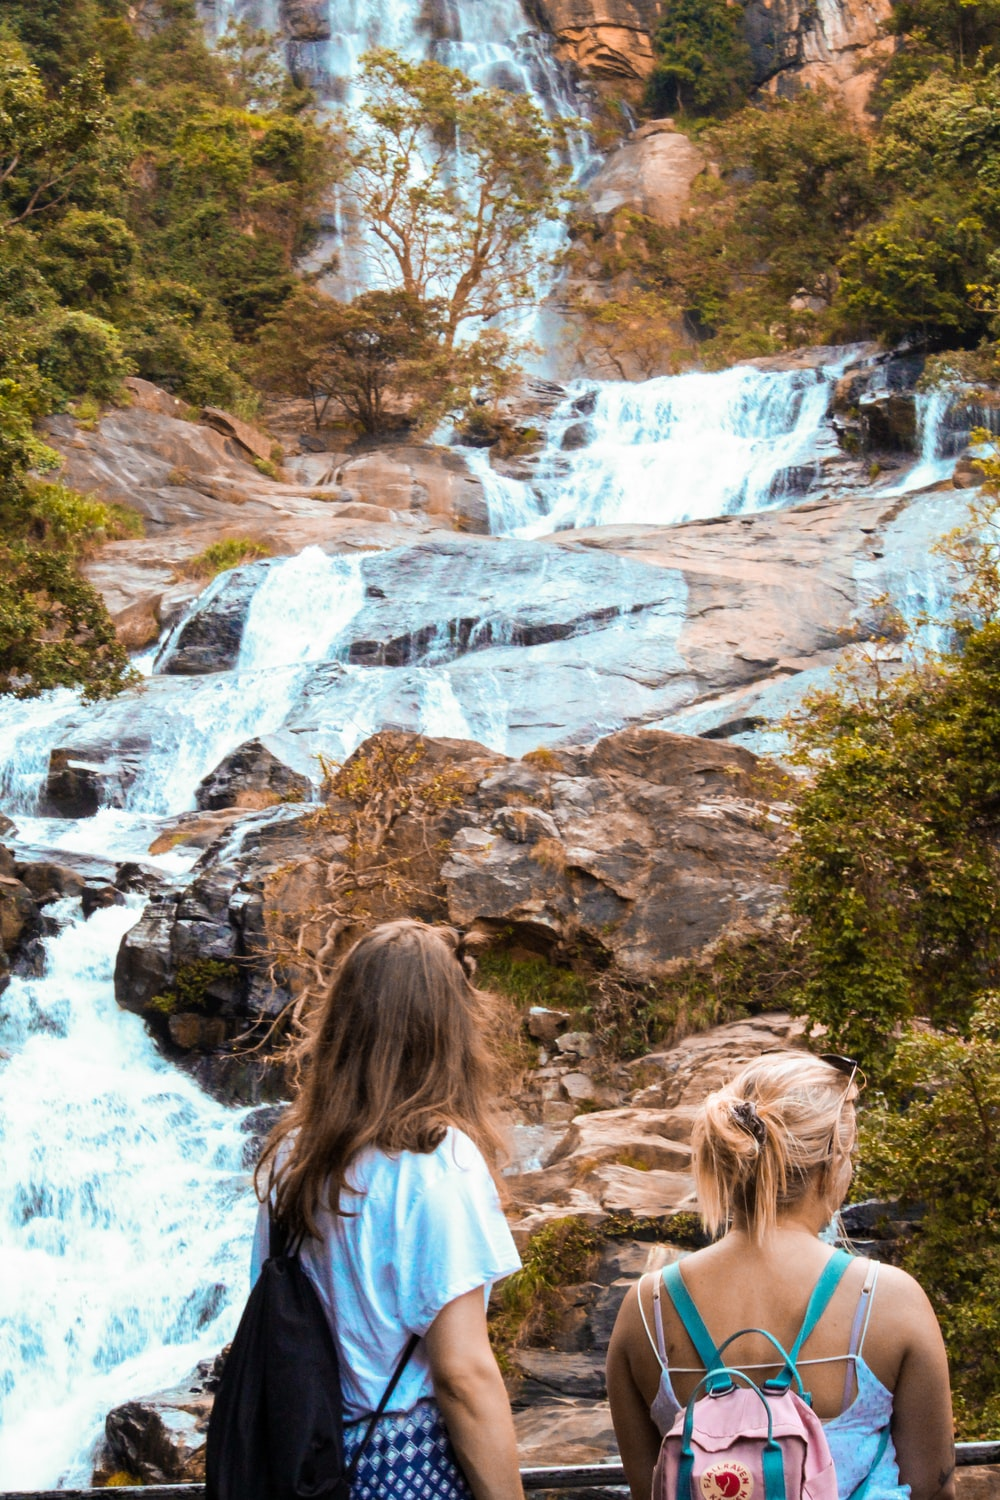 two women looking at a flowing multi-tier waterfall